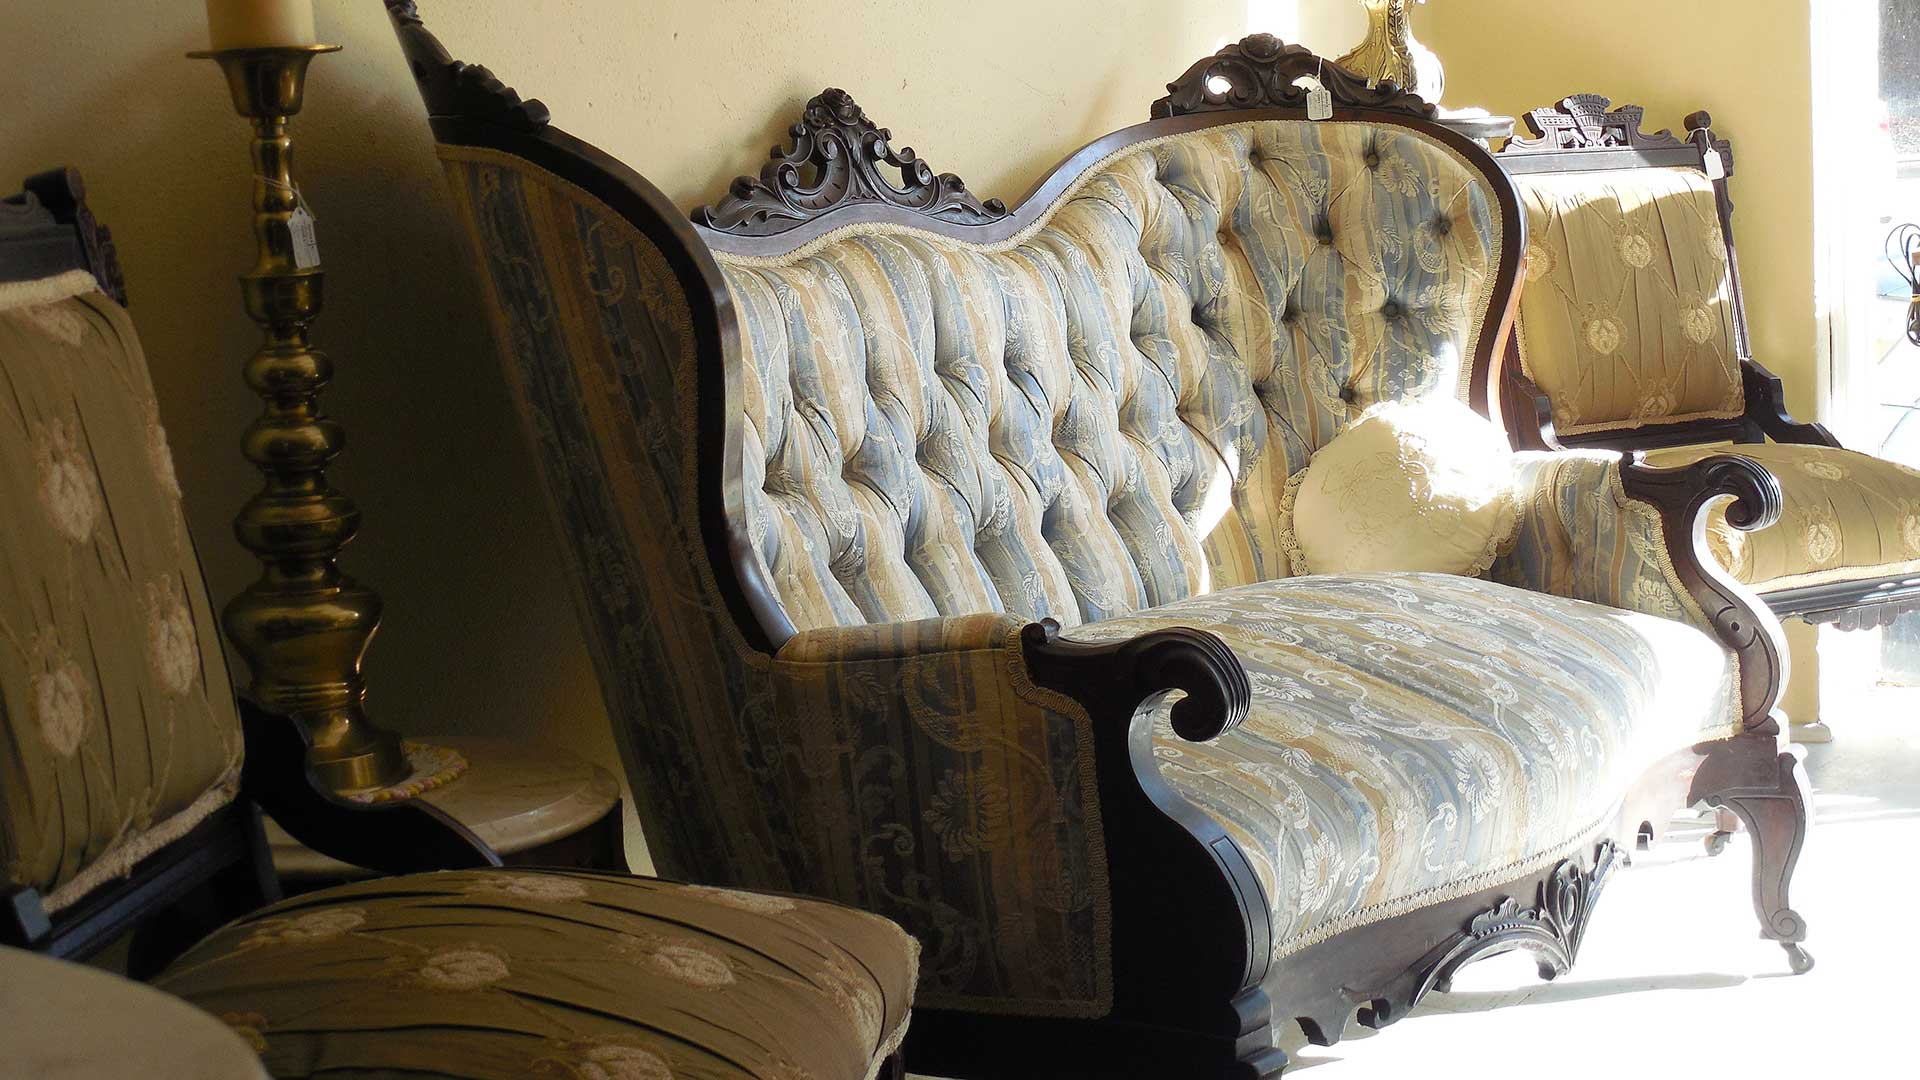 Ornately-carved wooden 2-seater sofa characteristic of the Victorian era.